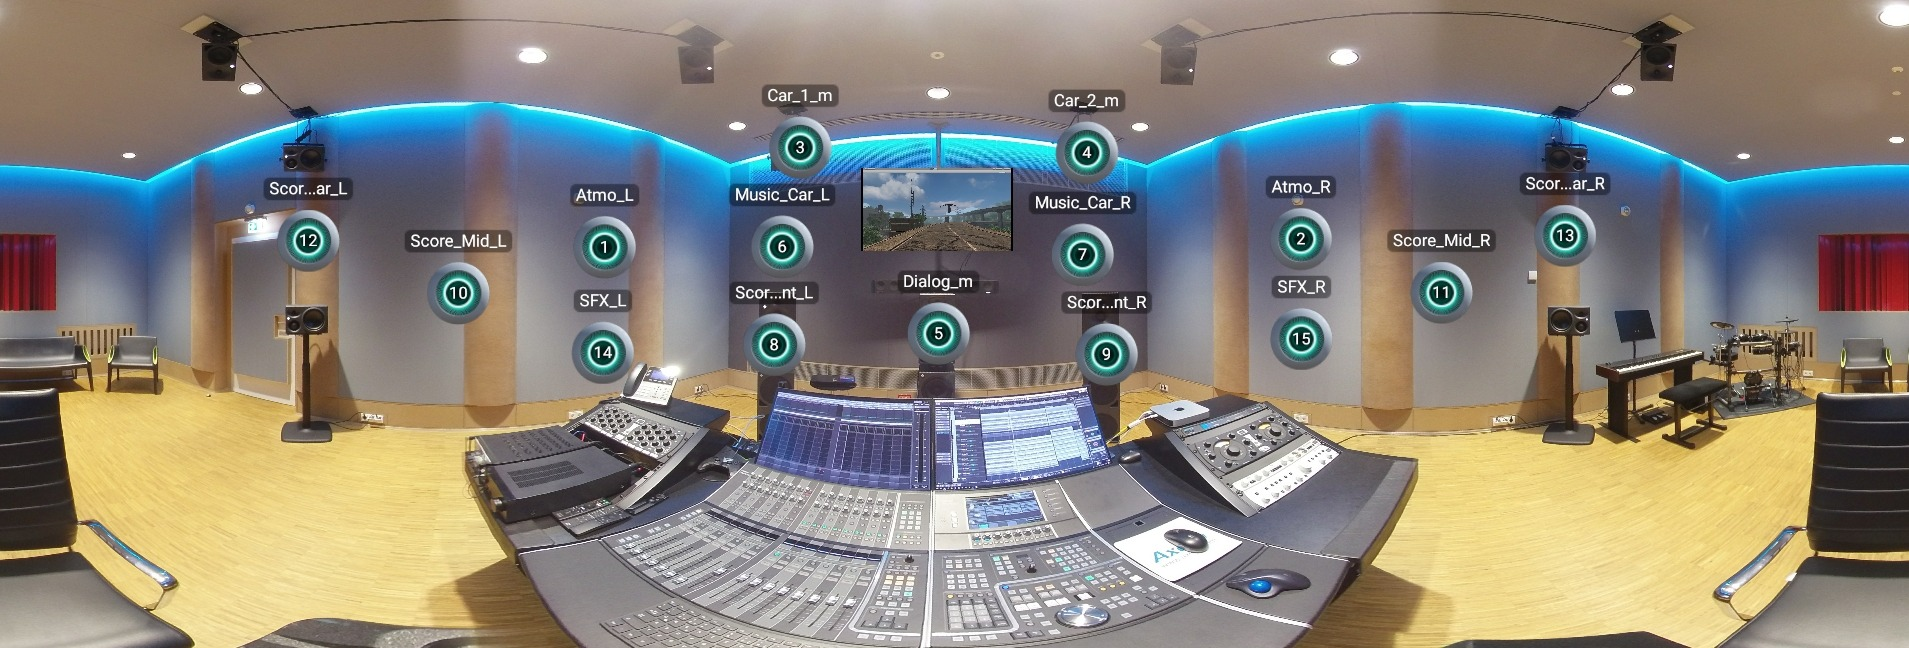 dearVR PRO to become an all-in-one solution for spatial audio productions